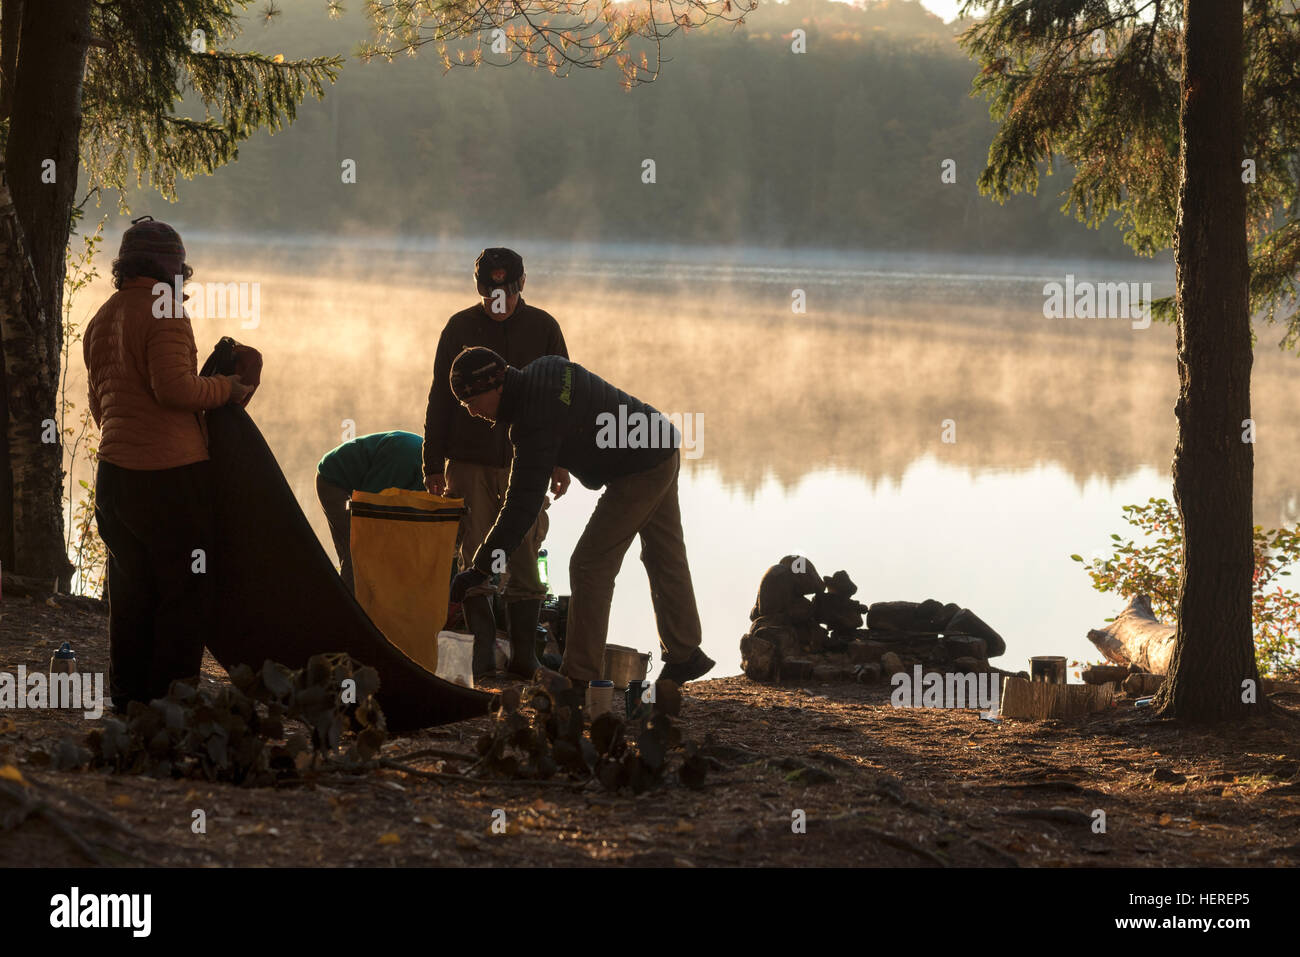 Packing up camp on a canoe trip in the St. Regis Canoe Area of Adirondack State Park, New York. - Stock Image